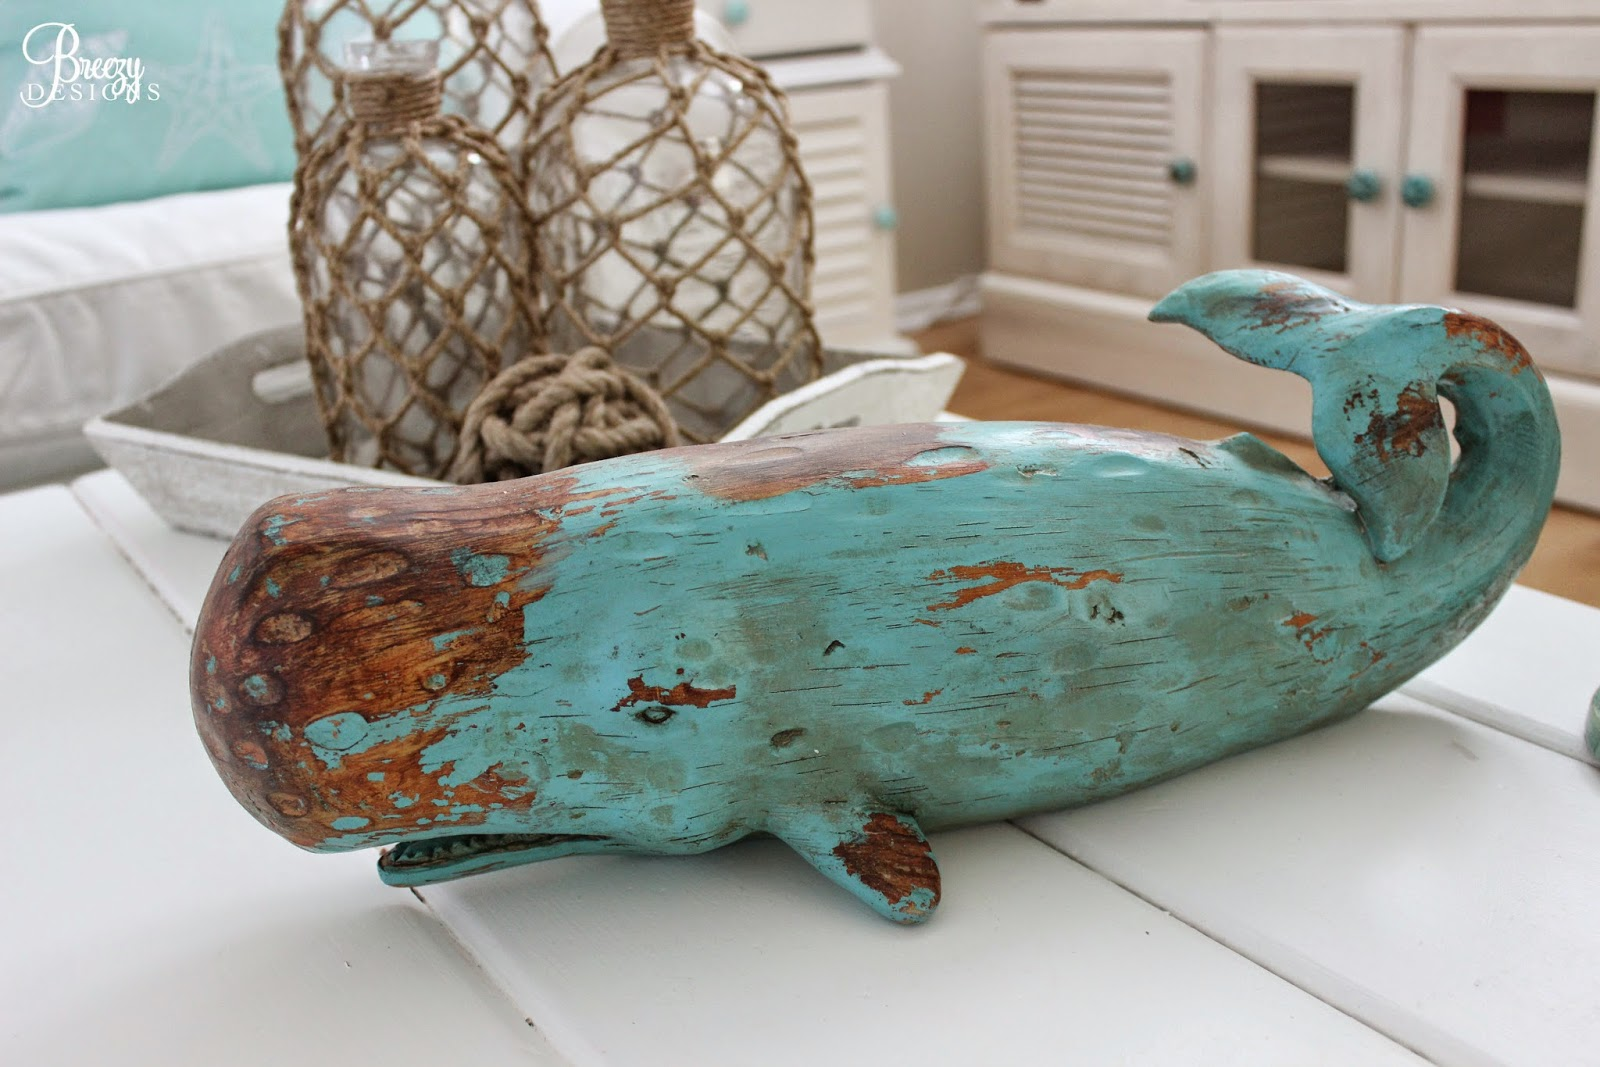 House Of Turquoise Guest Blogger Breezy From Breezy Designs